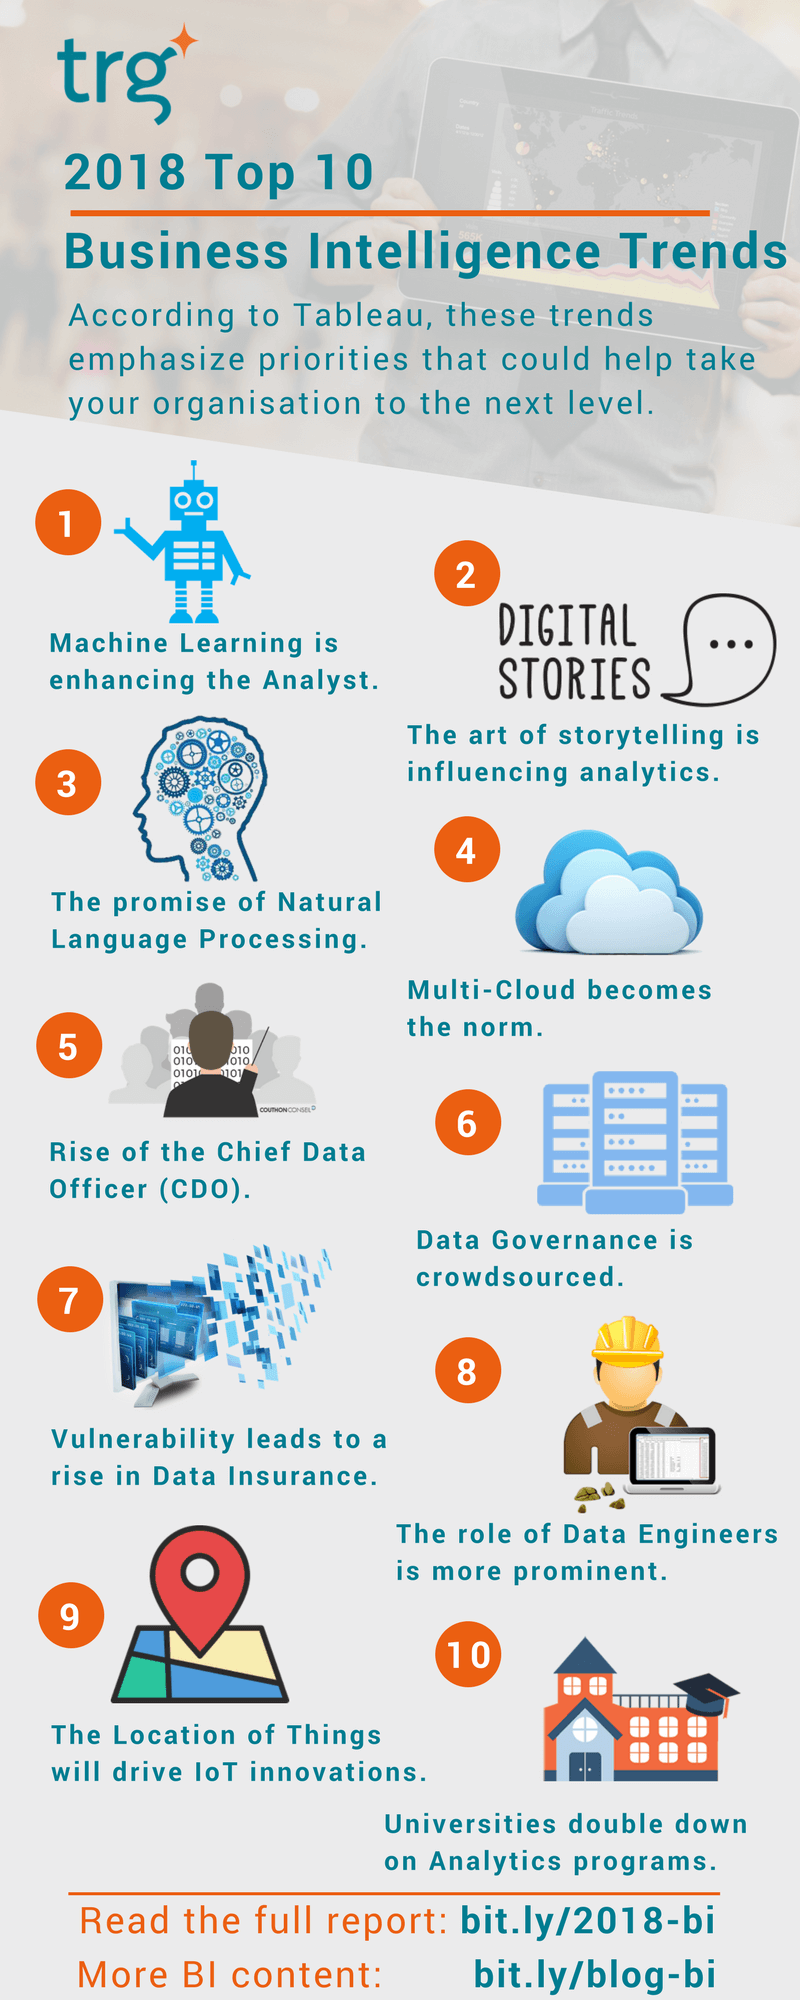 [Infographic] Top 10 Business Intelligence Trends in 2018